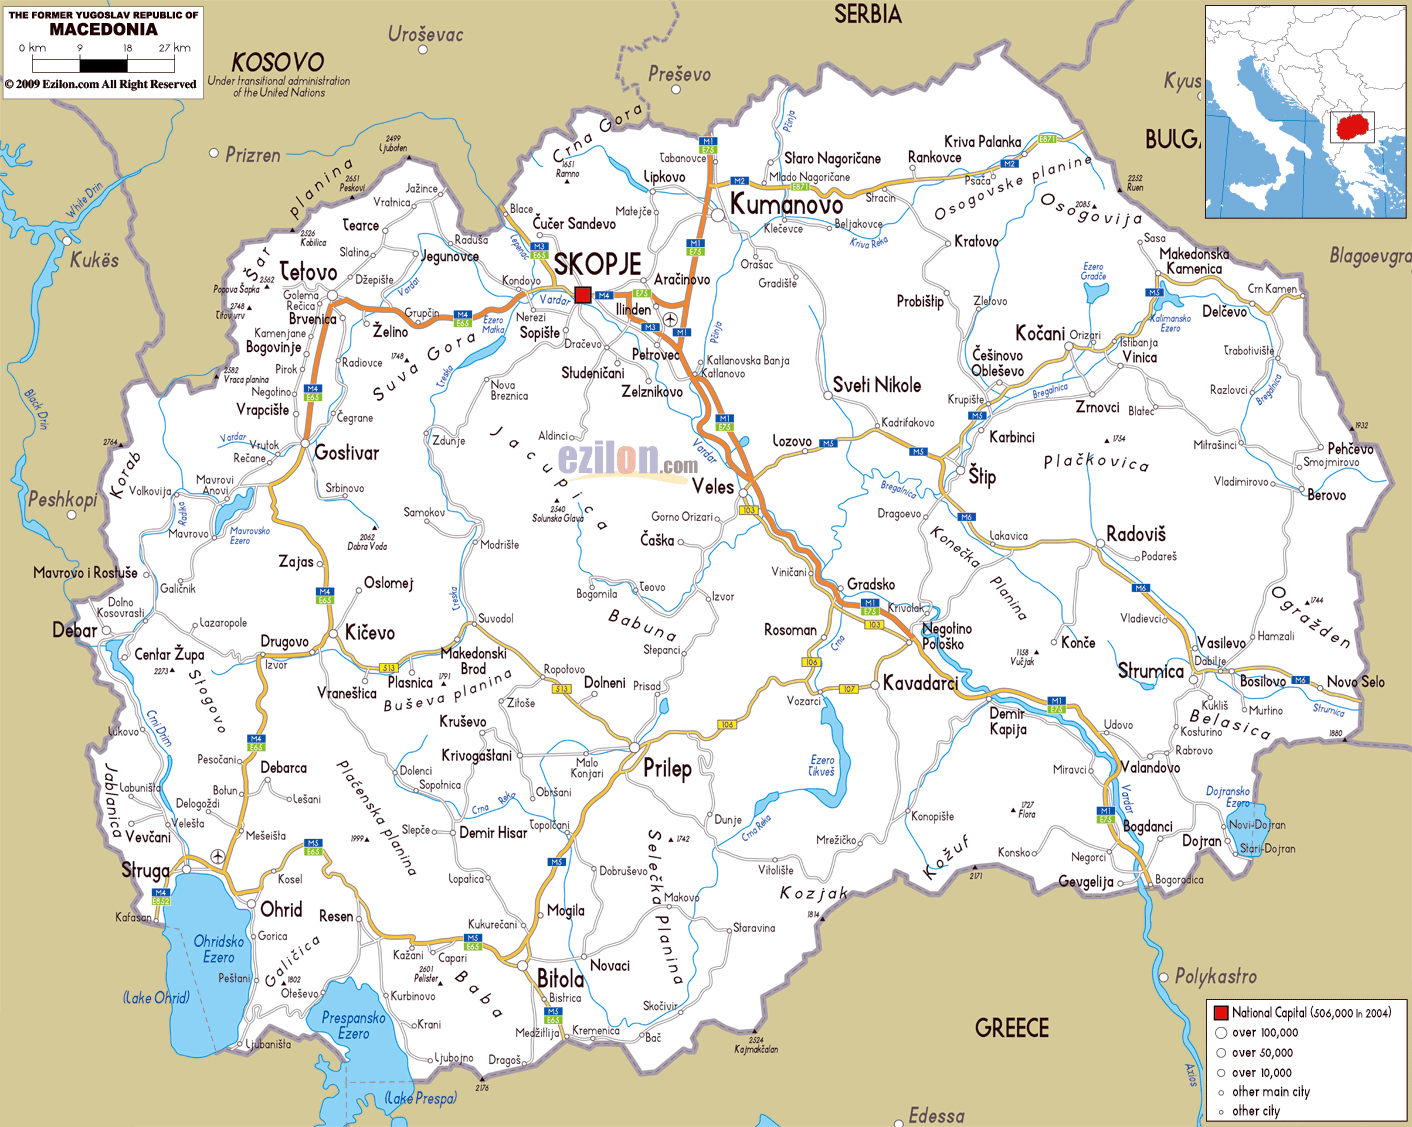 large_road_map_of_macedonia_with_cities_and_airports